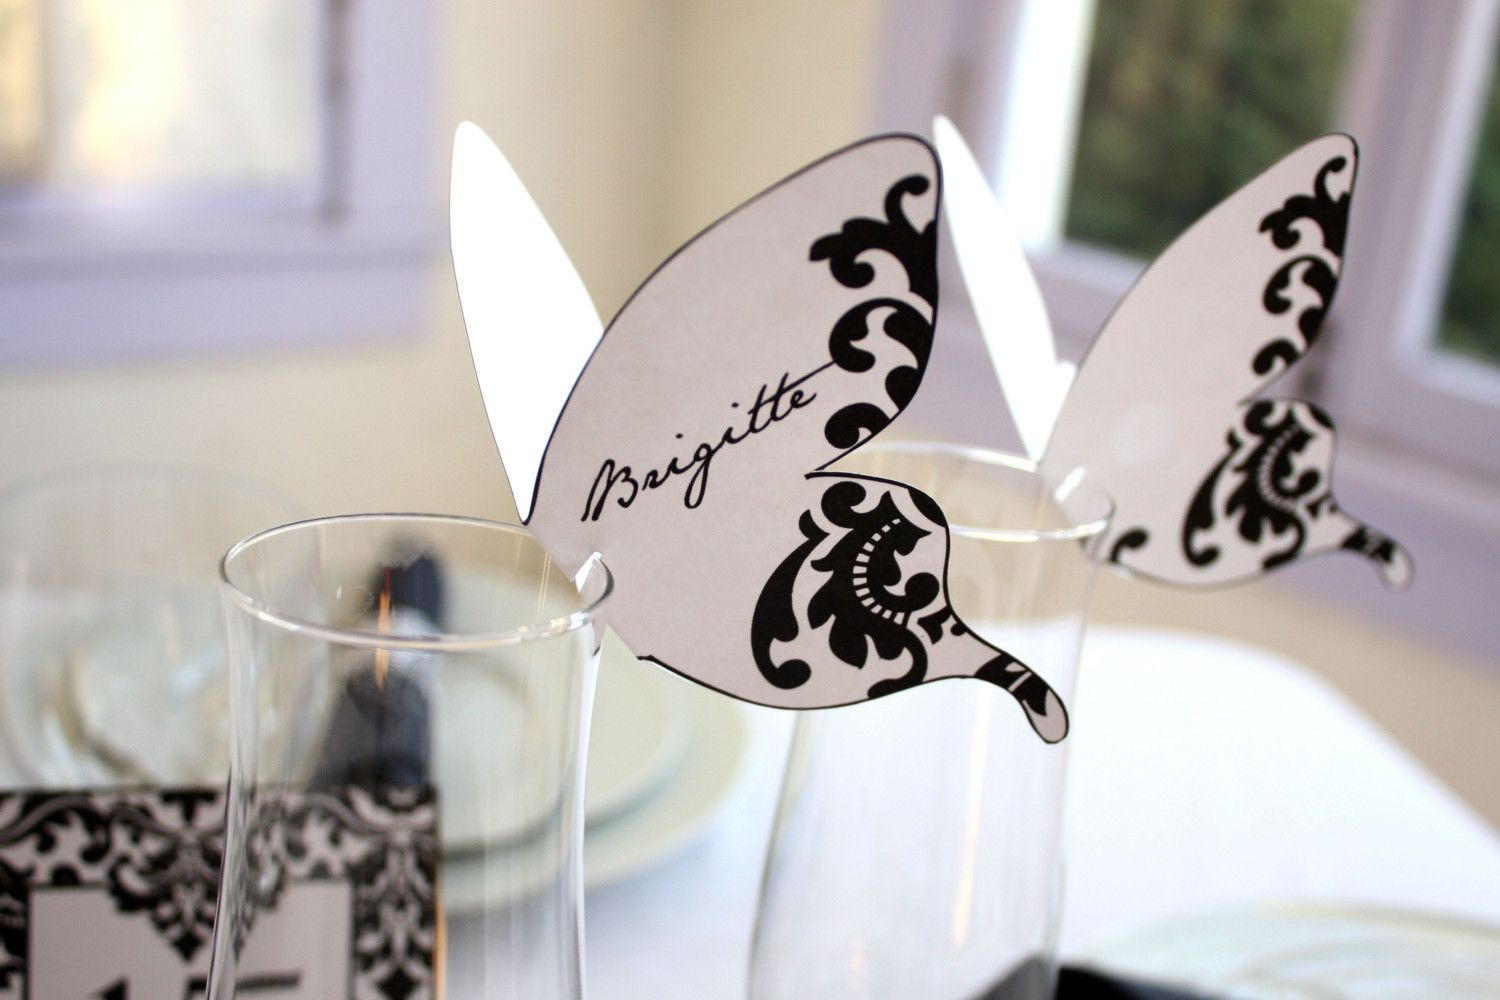 a creative name tag for a wedding or a party!